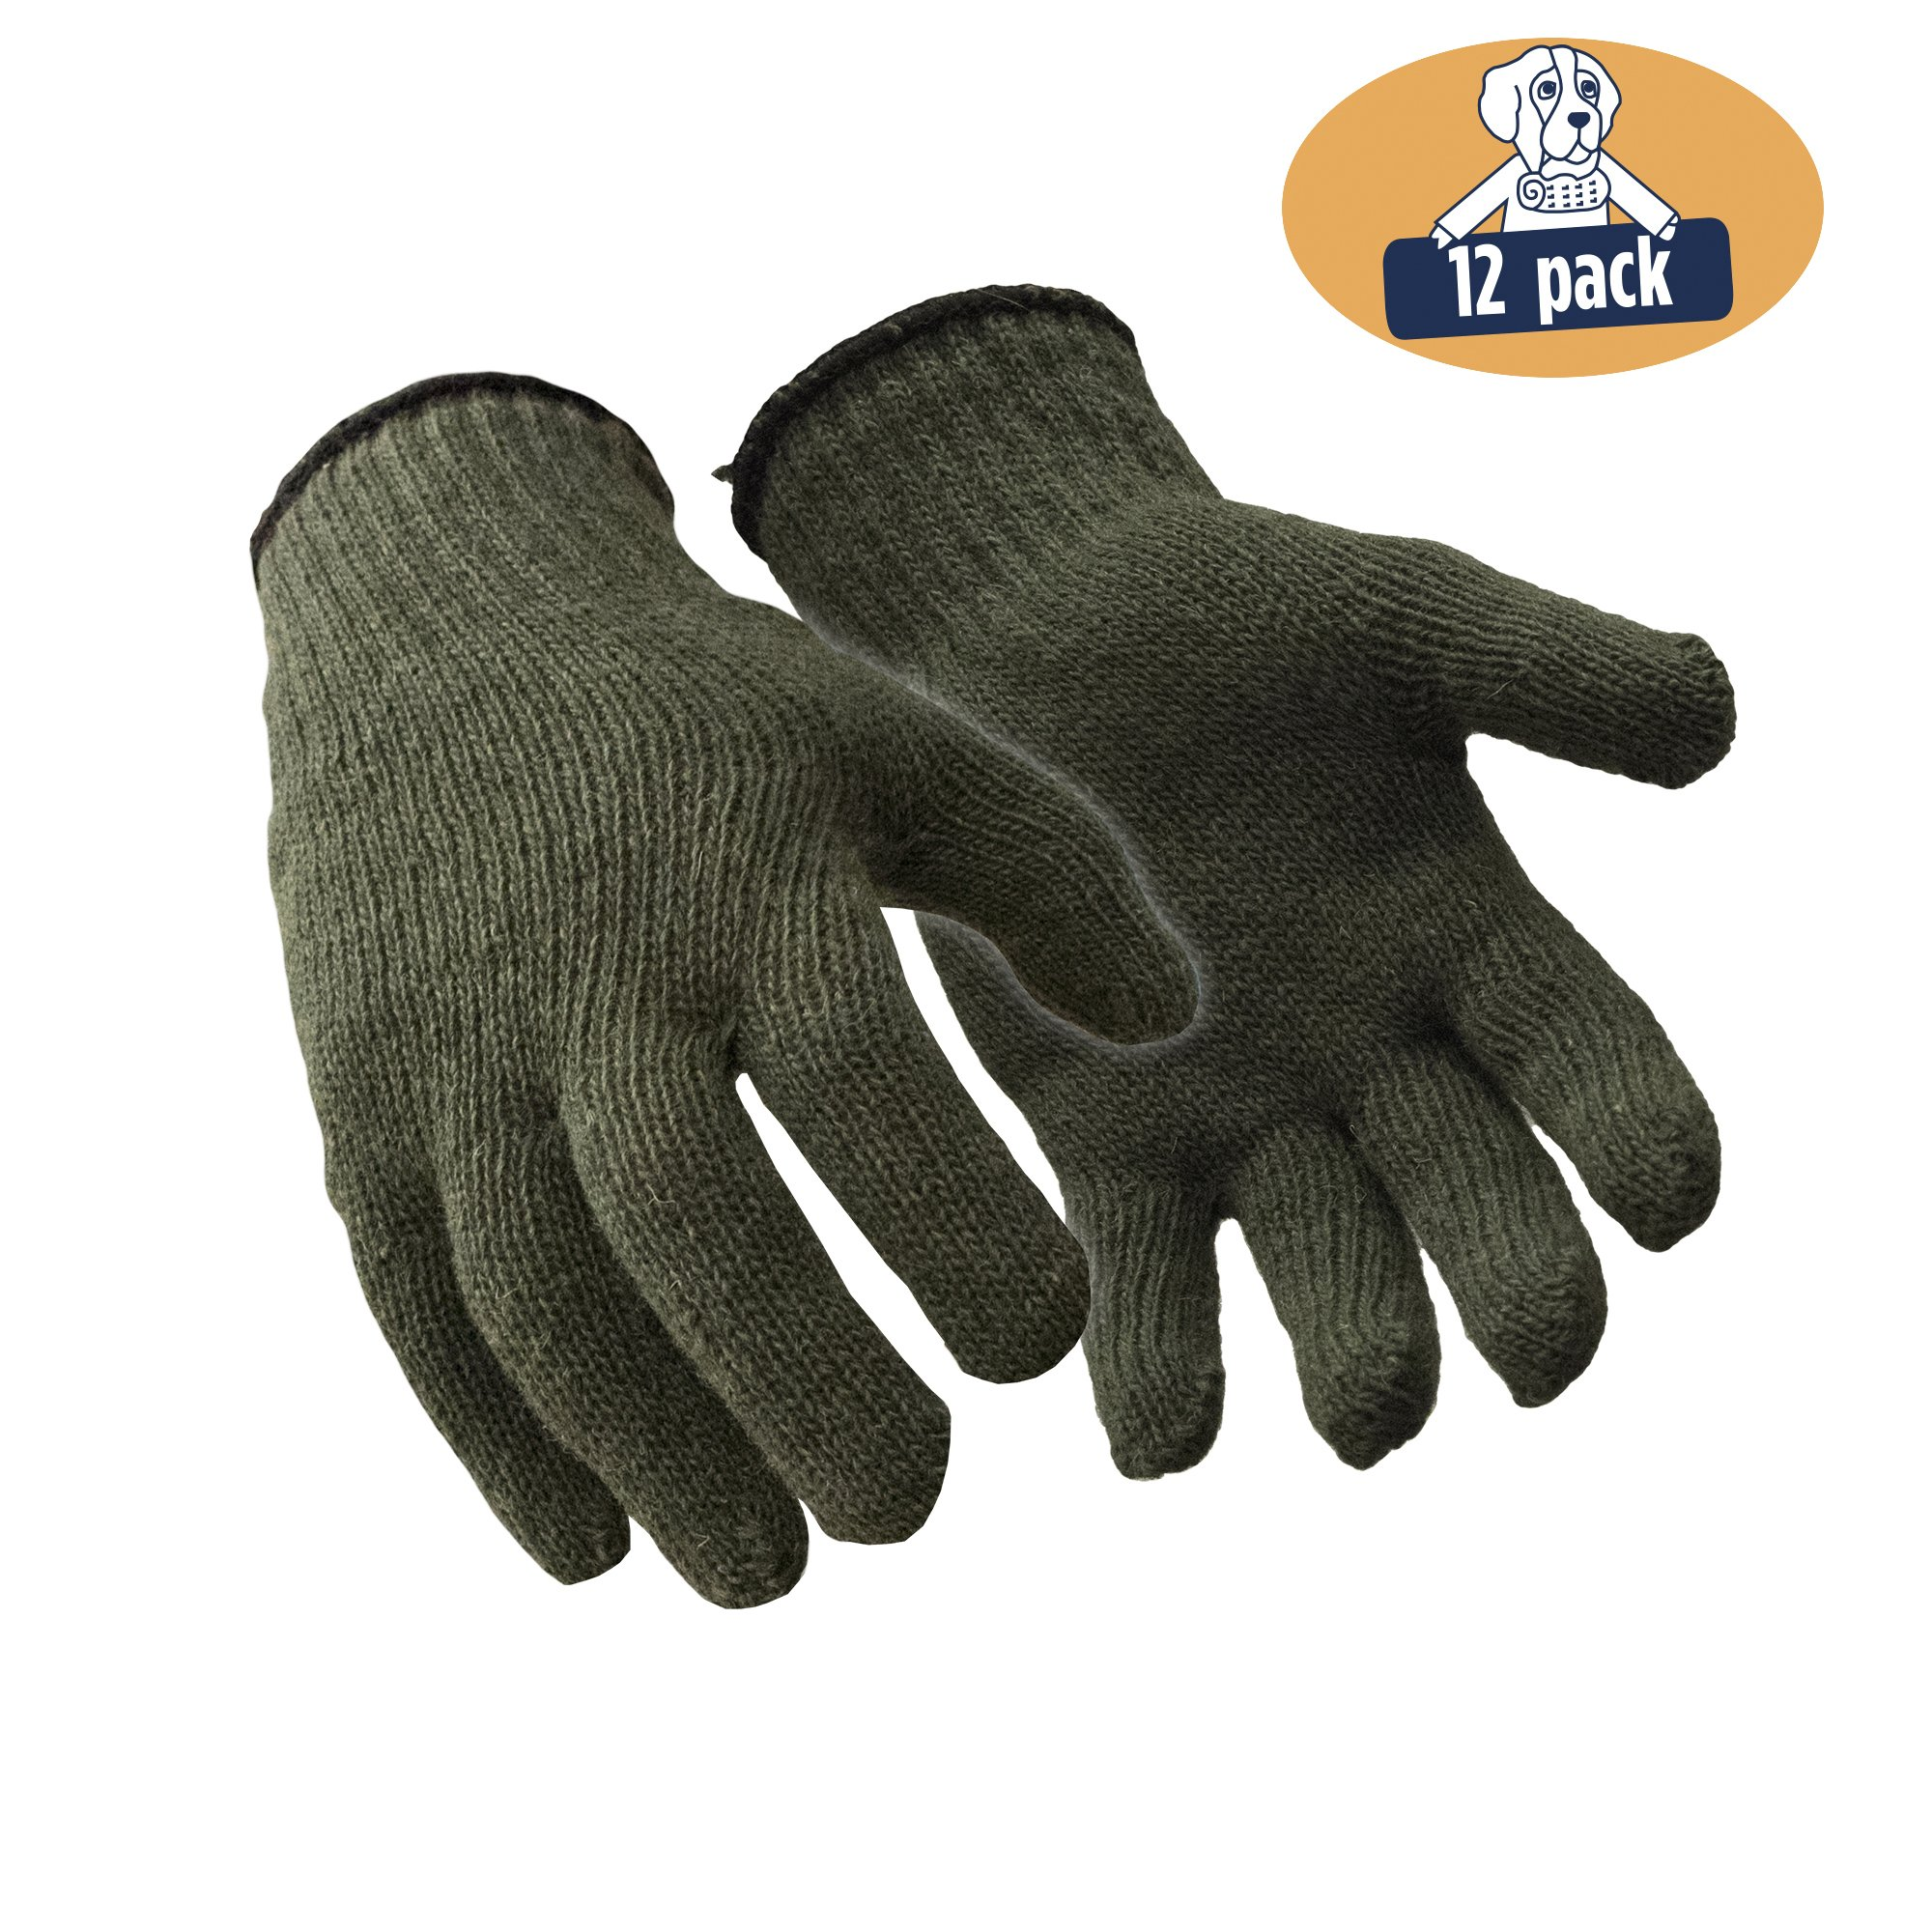 RefrigiWear Military Style Wool Glove Liner, Pack of 12 Pairs (Green, Small/Medium) by Refrigiwear